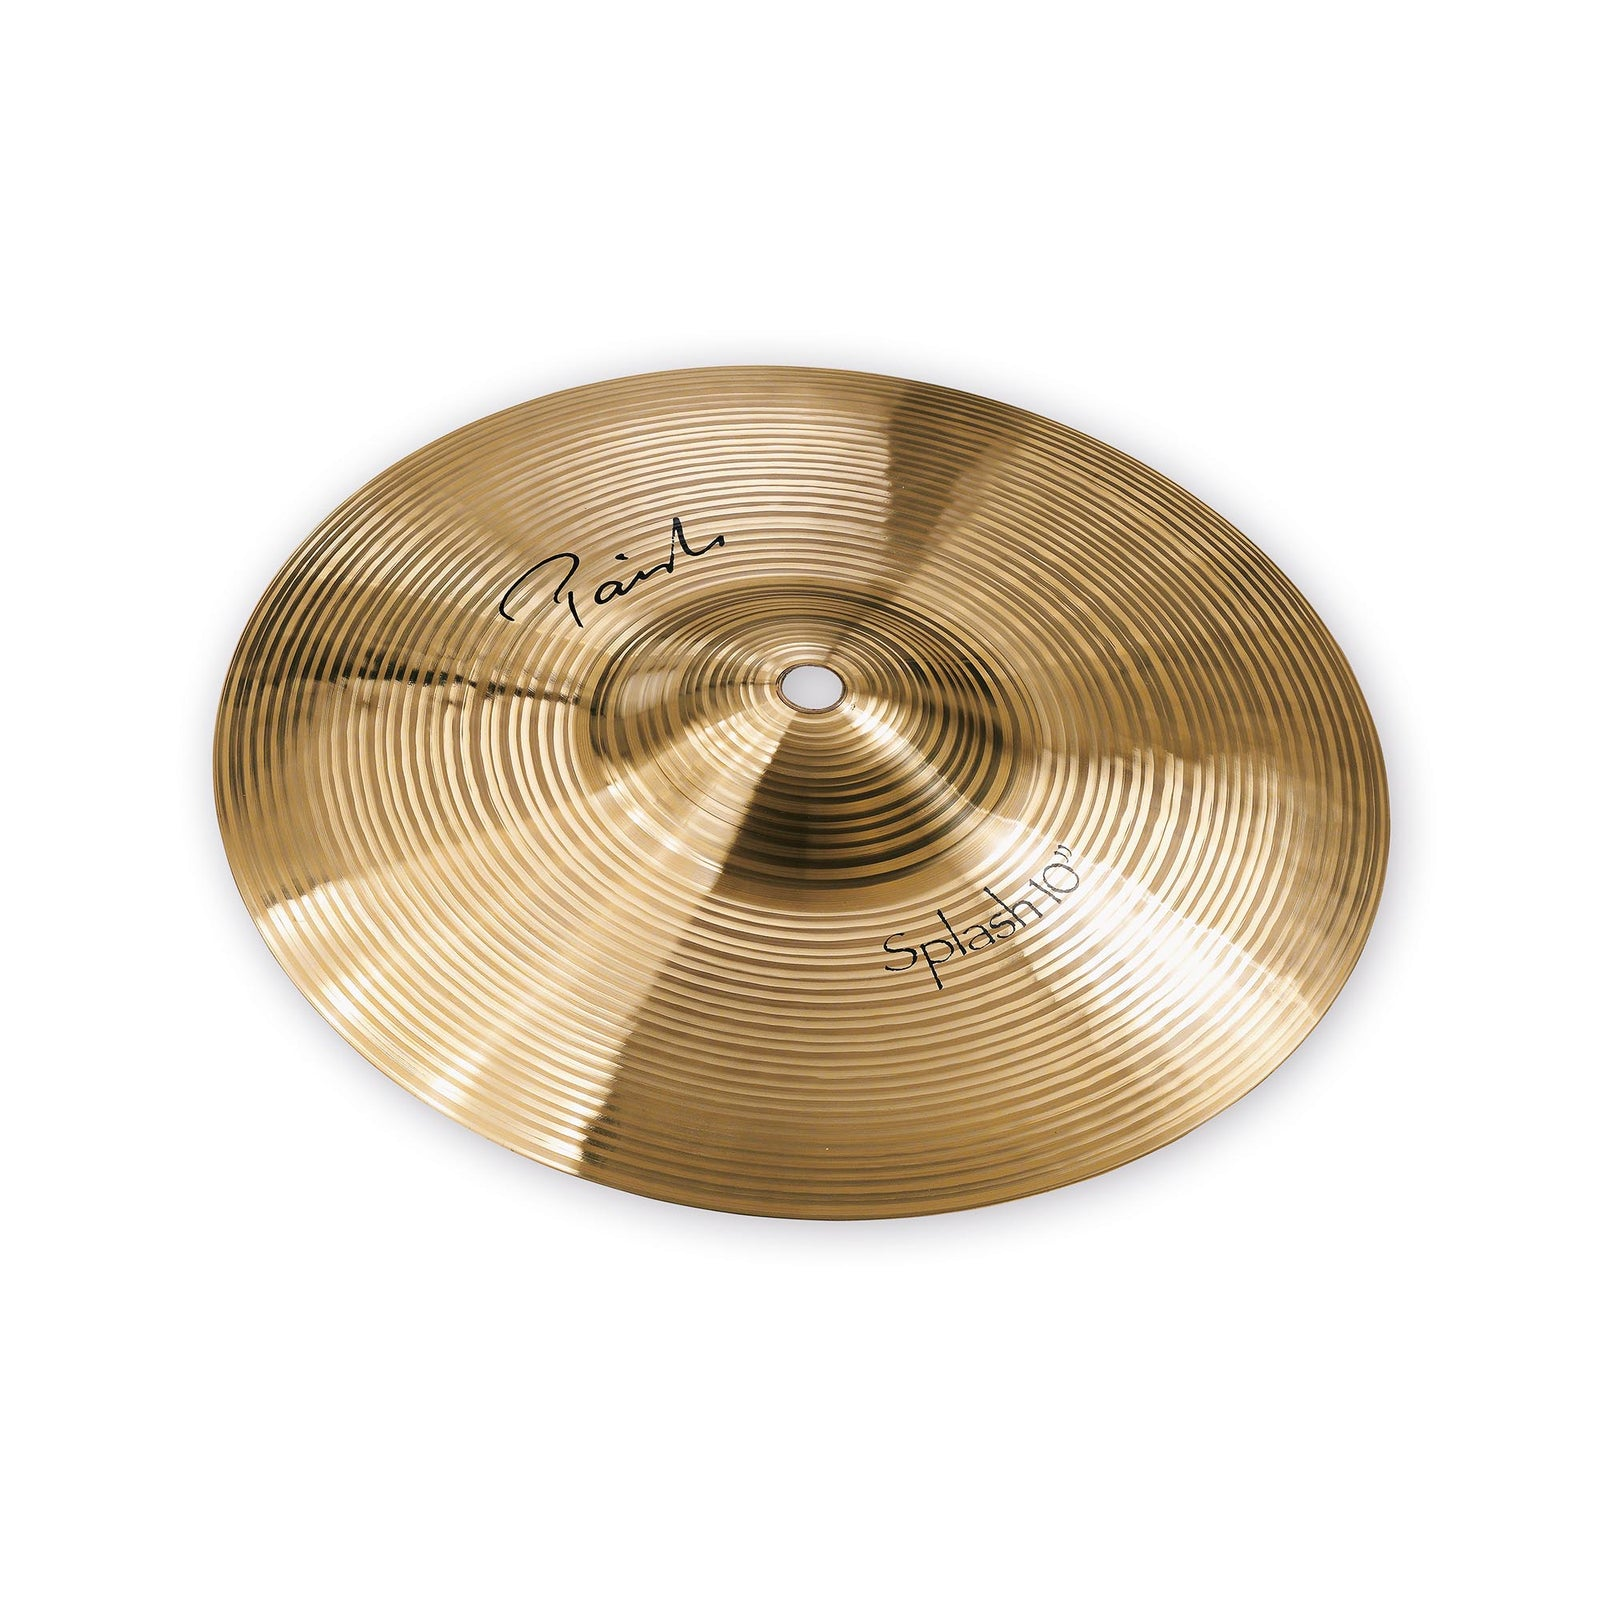 "Paiste 10"" Signature Splash"